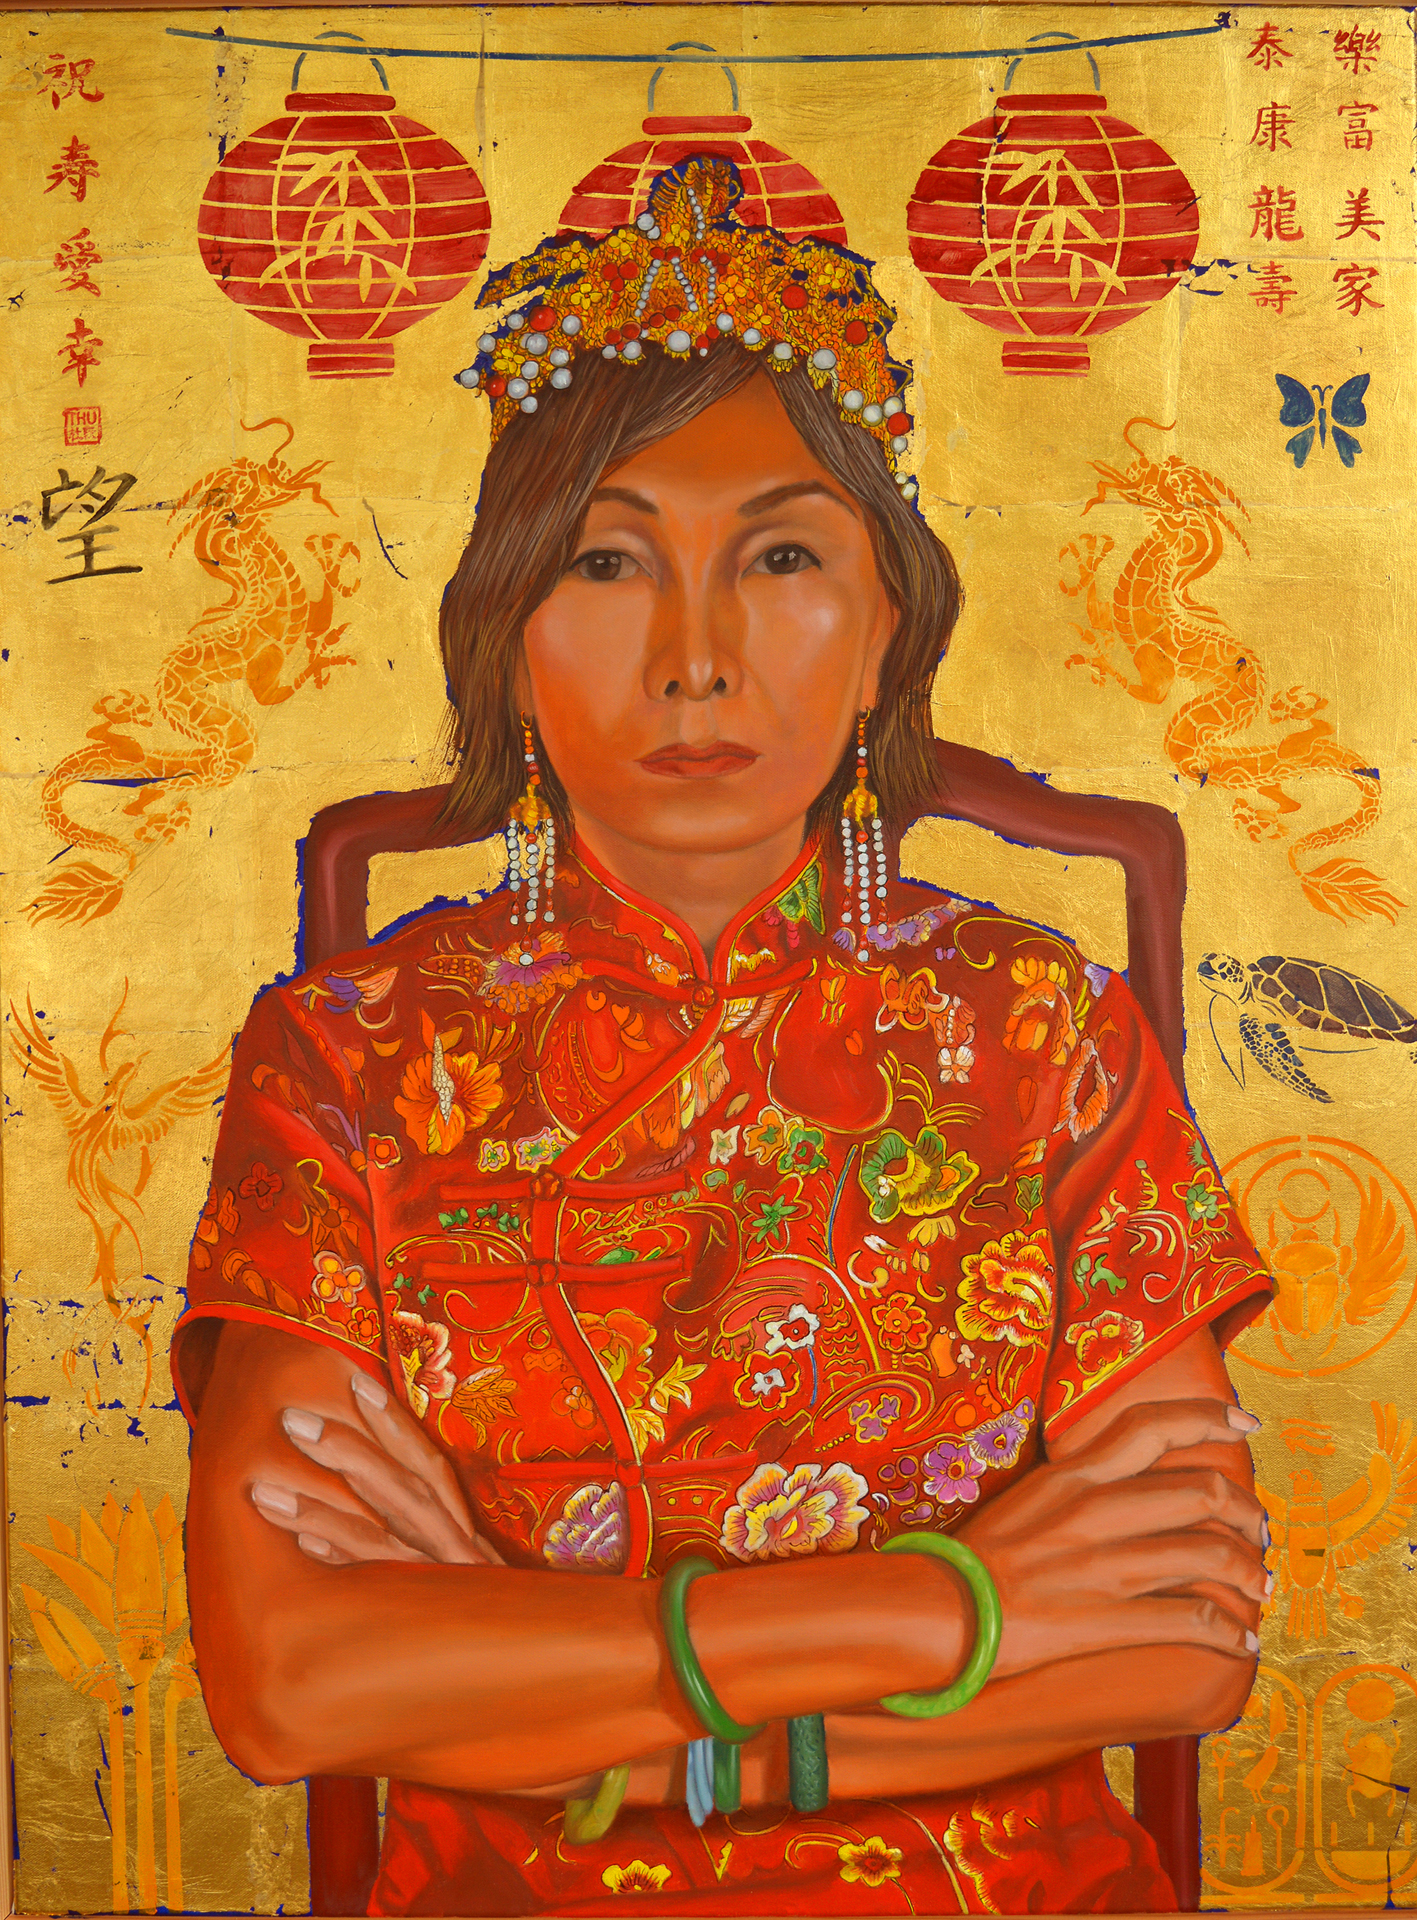 Made in China artwork by Thu Nguyen - art listed for sale on Artplode